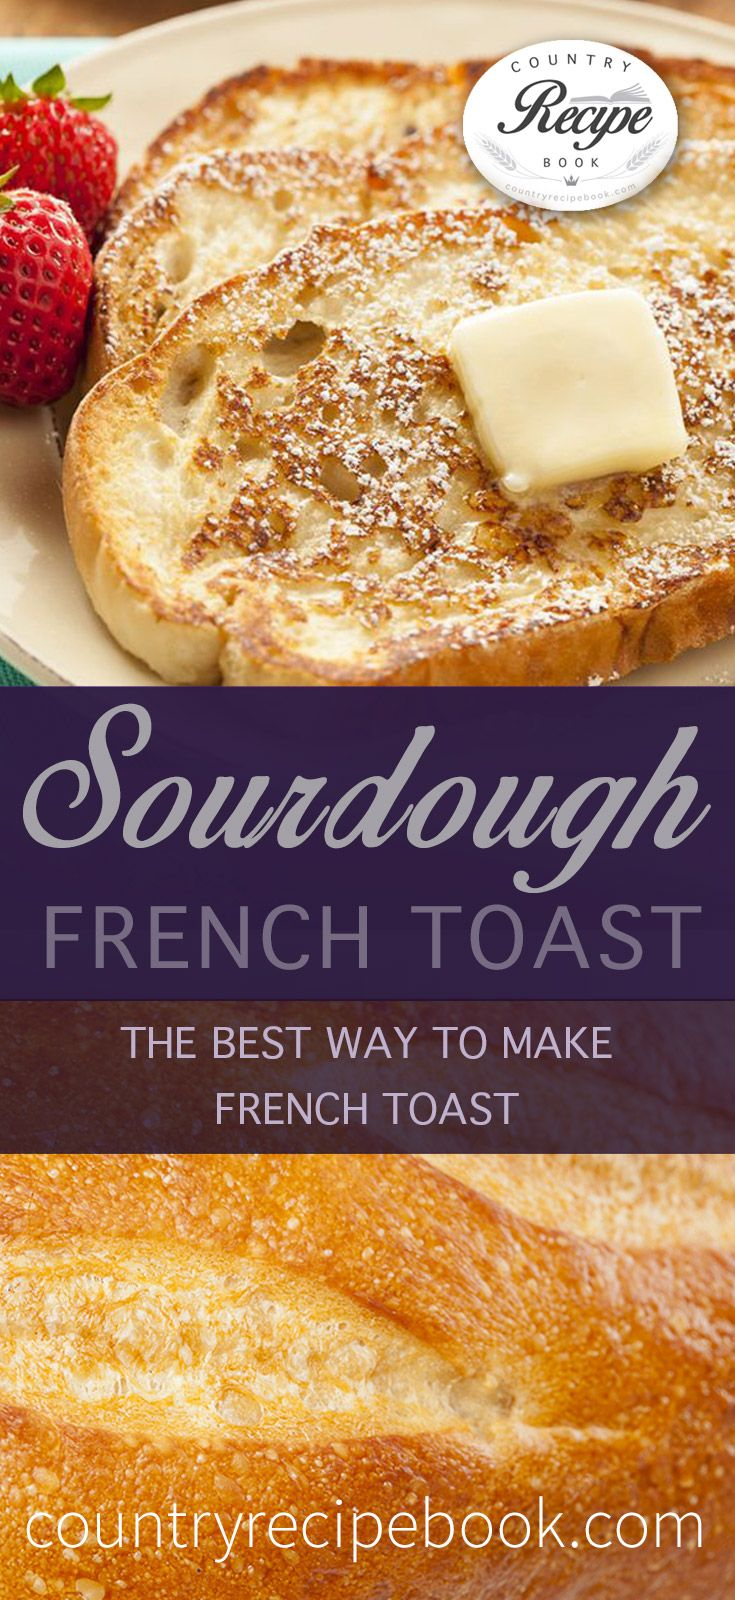 Country sourdough french toast recipe easy recipes and french country sourdough french toast french food recipesfrench forumfinder Choice Image